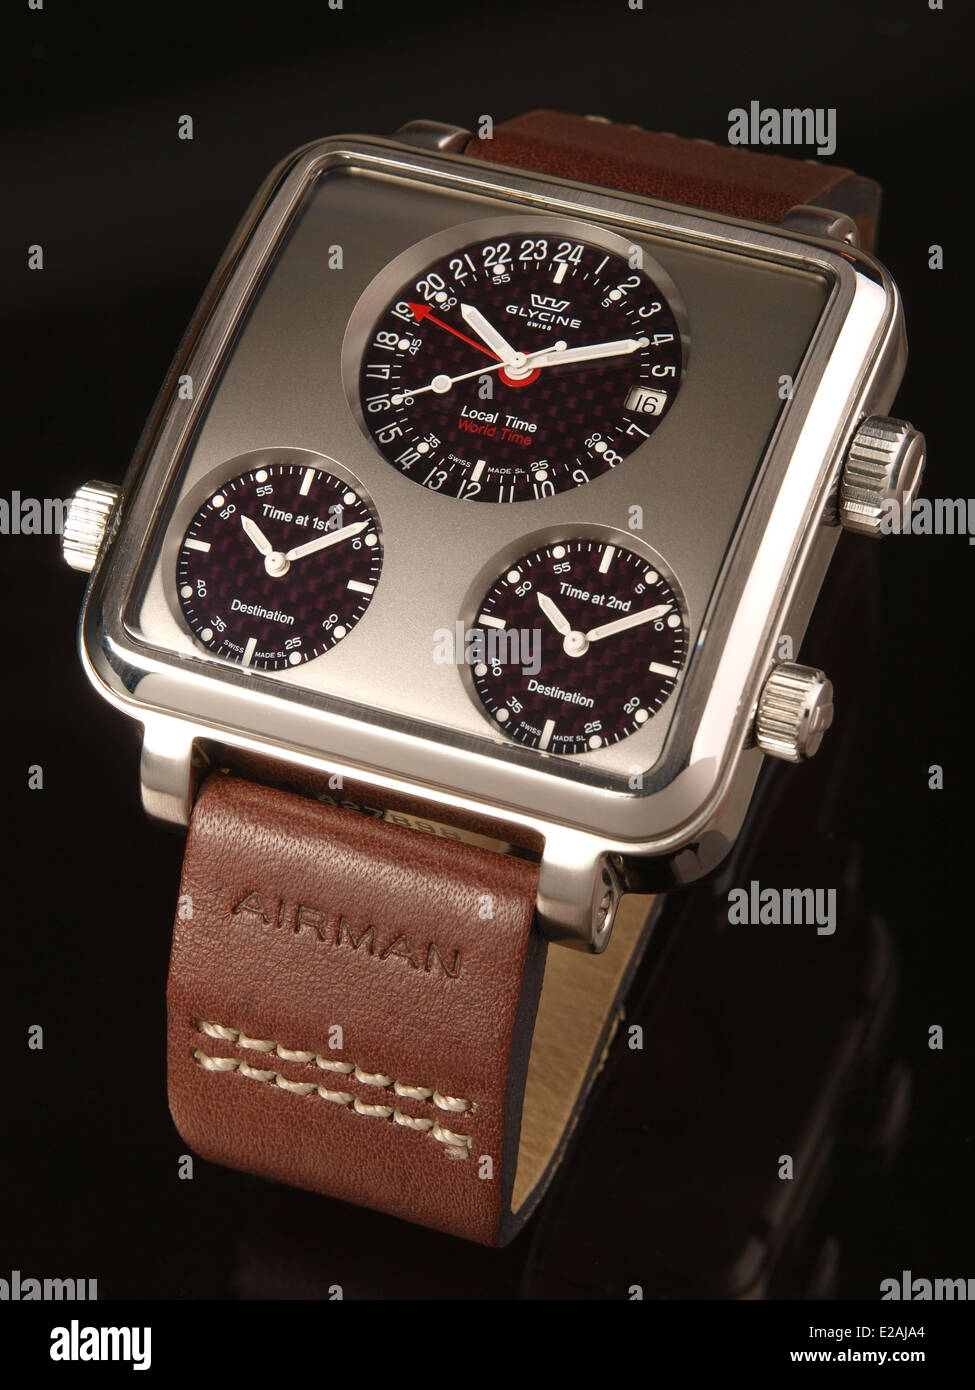 Glycine Airman 7 Plaza Mayor watch with leather strap - Stock Image